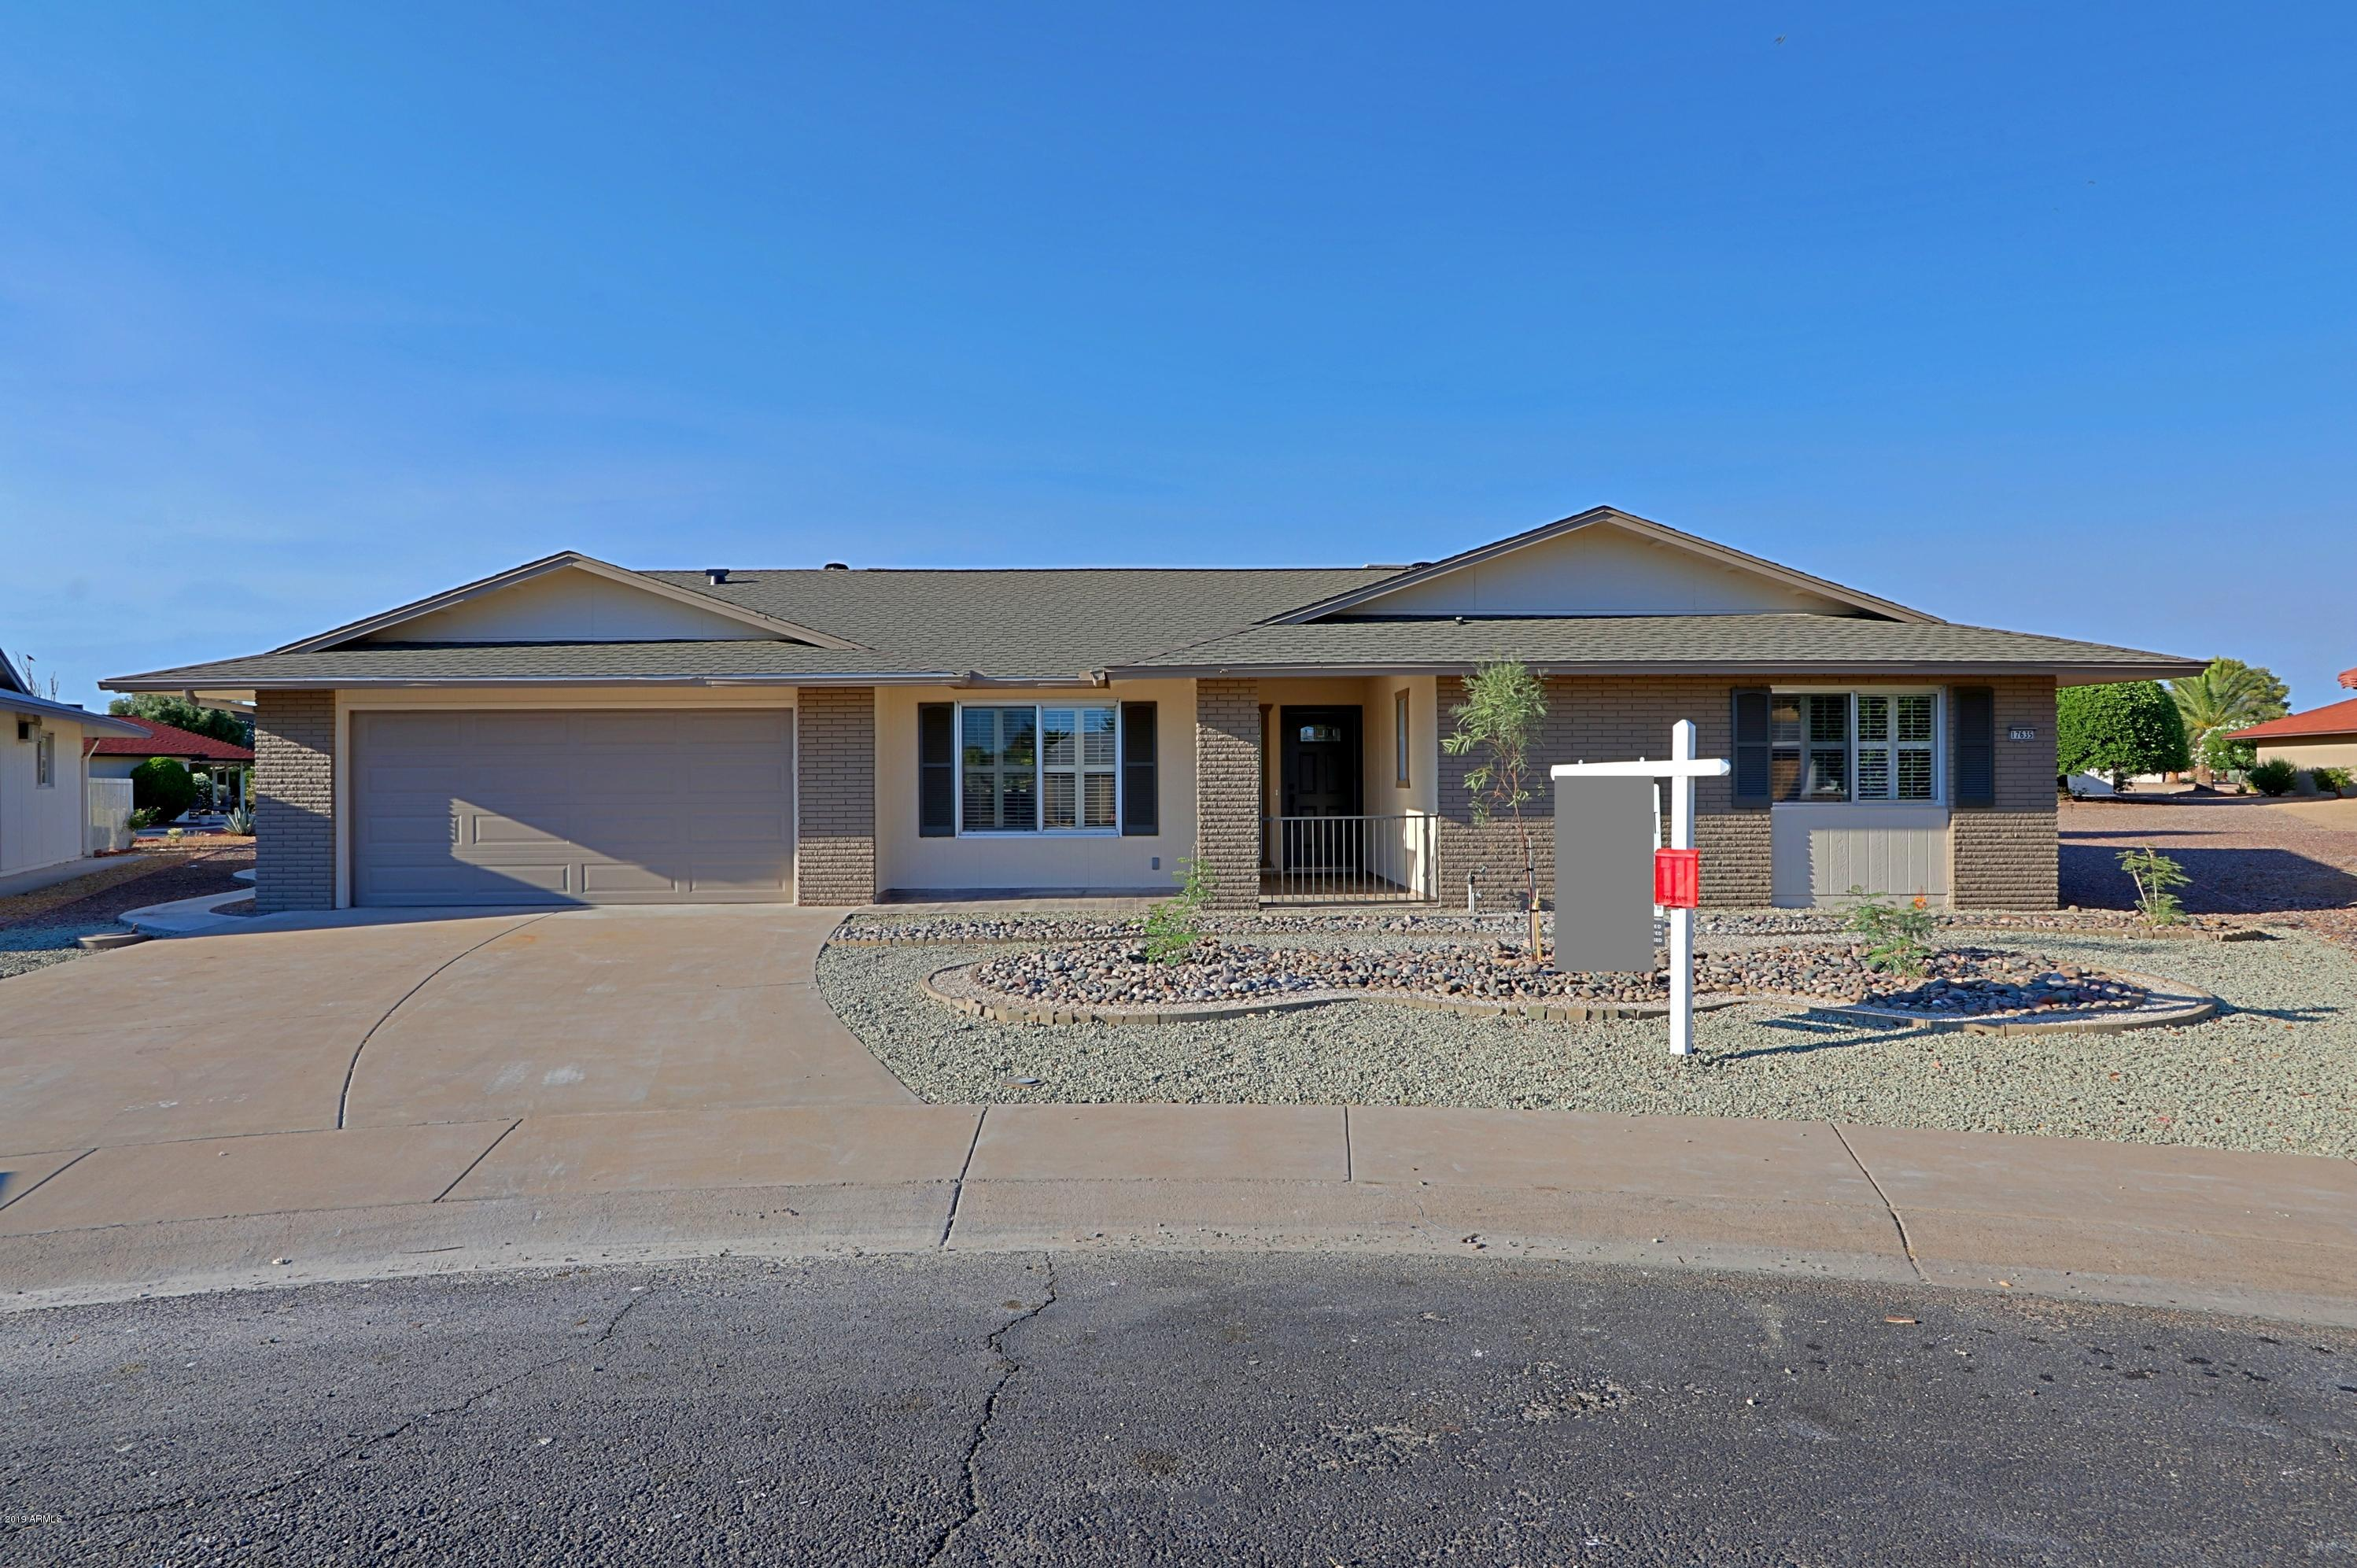 MLS 5942113 17635 N 131ST Drive, Sun City West, AZ 85375 Sun City West AZ Cul-De-Sac